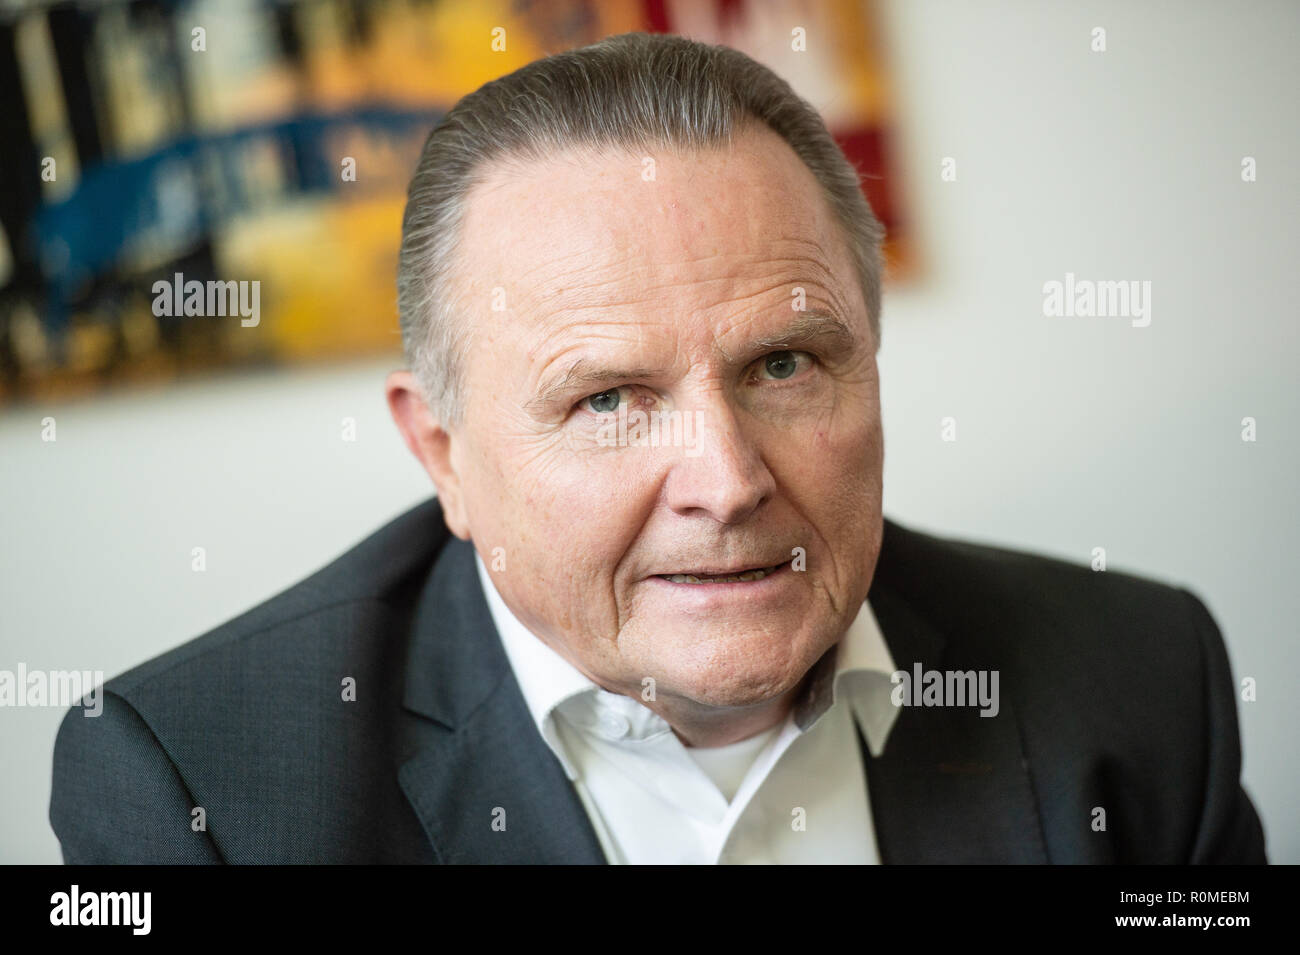 Berlin, Germany. 06th Nov, 2018. Georg Pazderski (AfD), leader of the AfD parliamentary group in the Berlin House of Representatives, speaks to journalists in the party's parliamentary group rooms about the interim status of the AfD Internet portal 'Neutrale Schule' (Neutral School). On 22.10. the Berlin AfD had put a website online, on which pupils and parents can tell if teachers in class are critical of the AfD. Credit: Arne Immanuel Bänsch/dpa/Alamy Live News - Stock Image